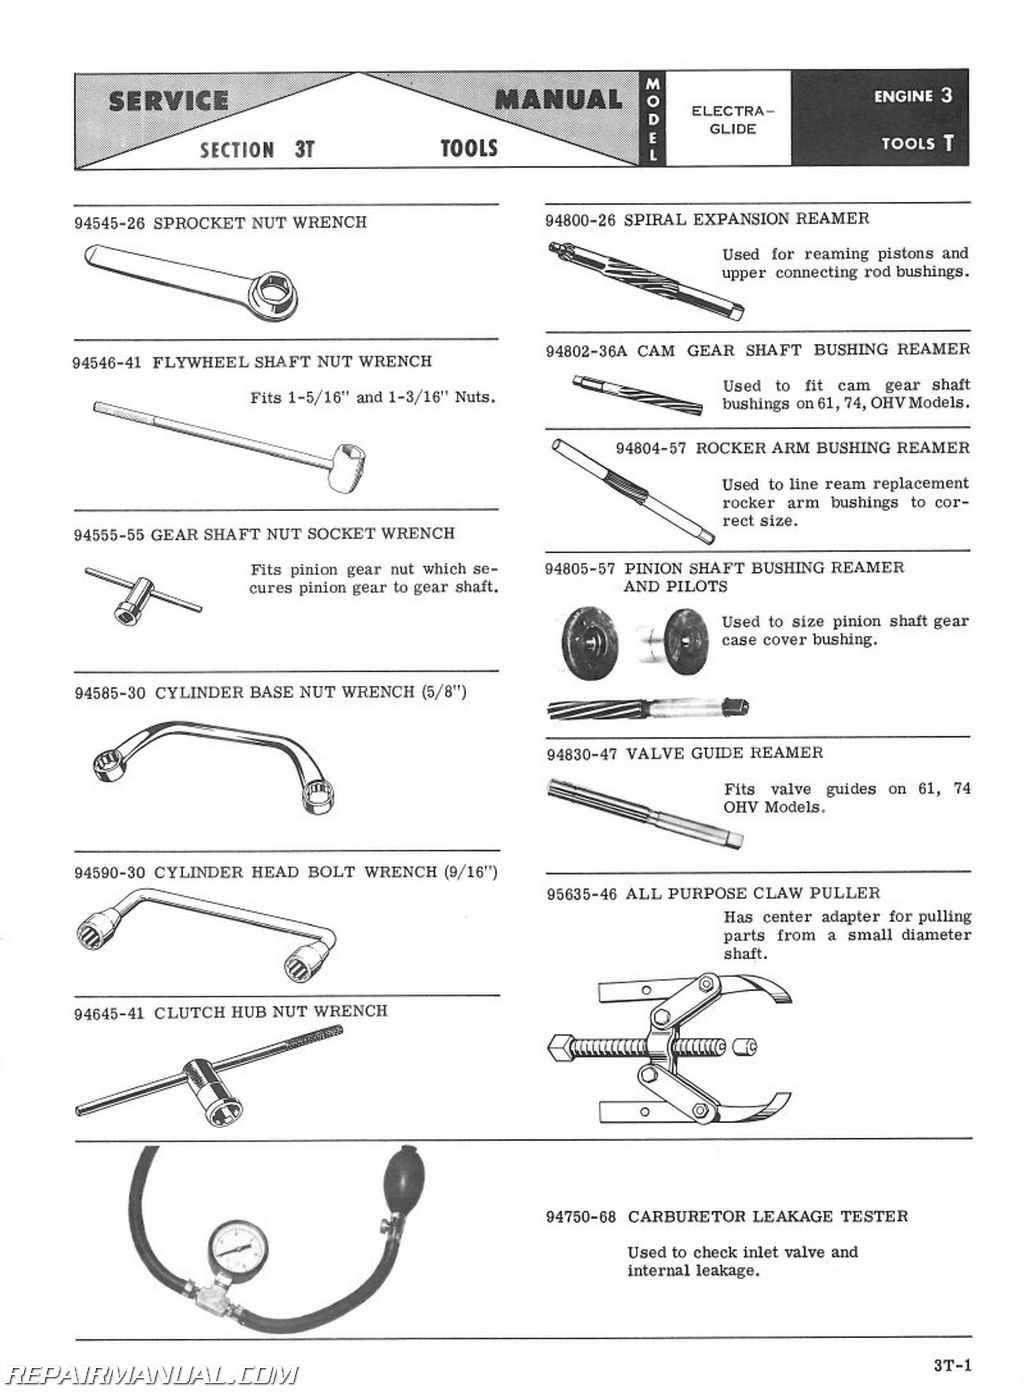 1959 1969 harley davidson electra glide duo glide motorcycle 1959 1969 harley davidson electra glide duo glide service manual page 2